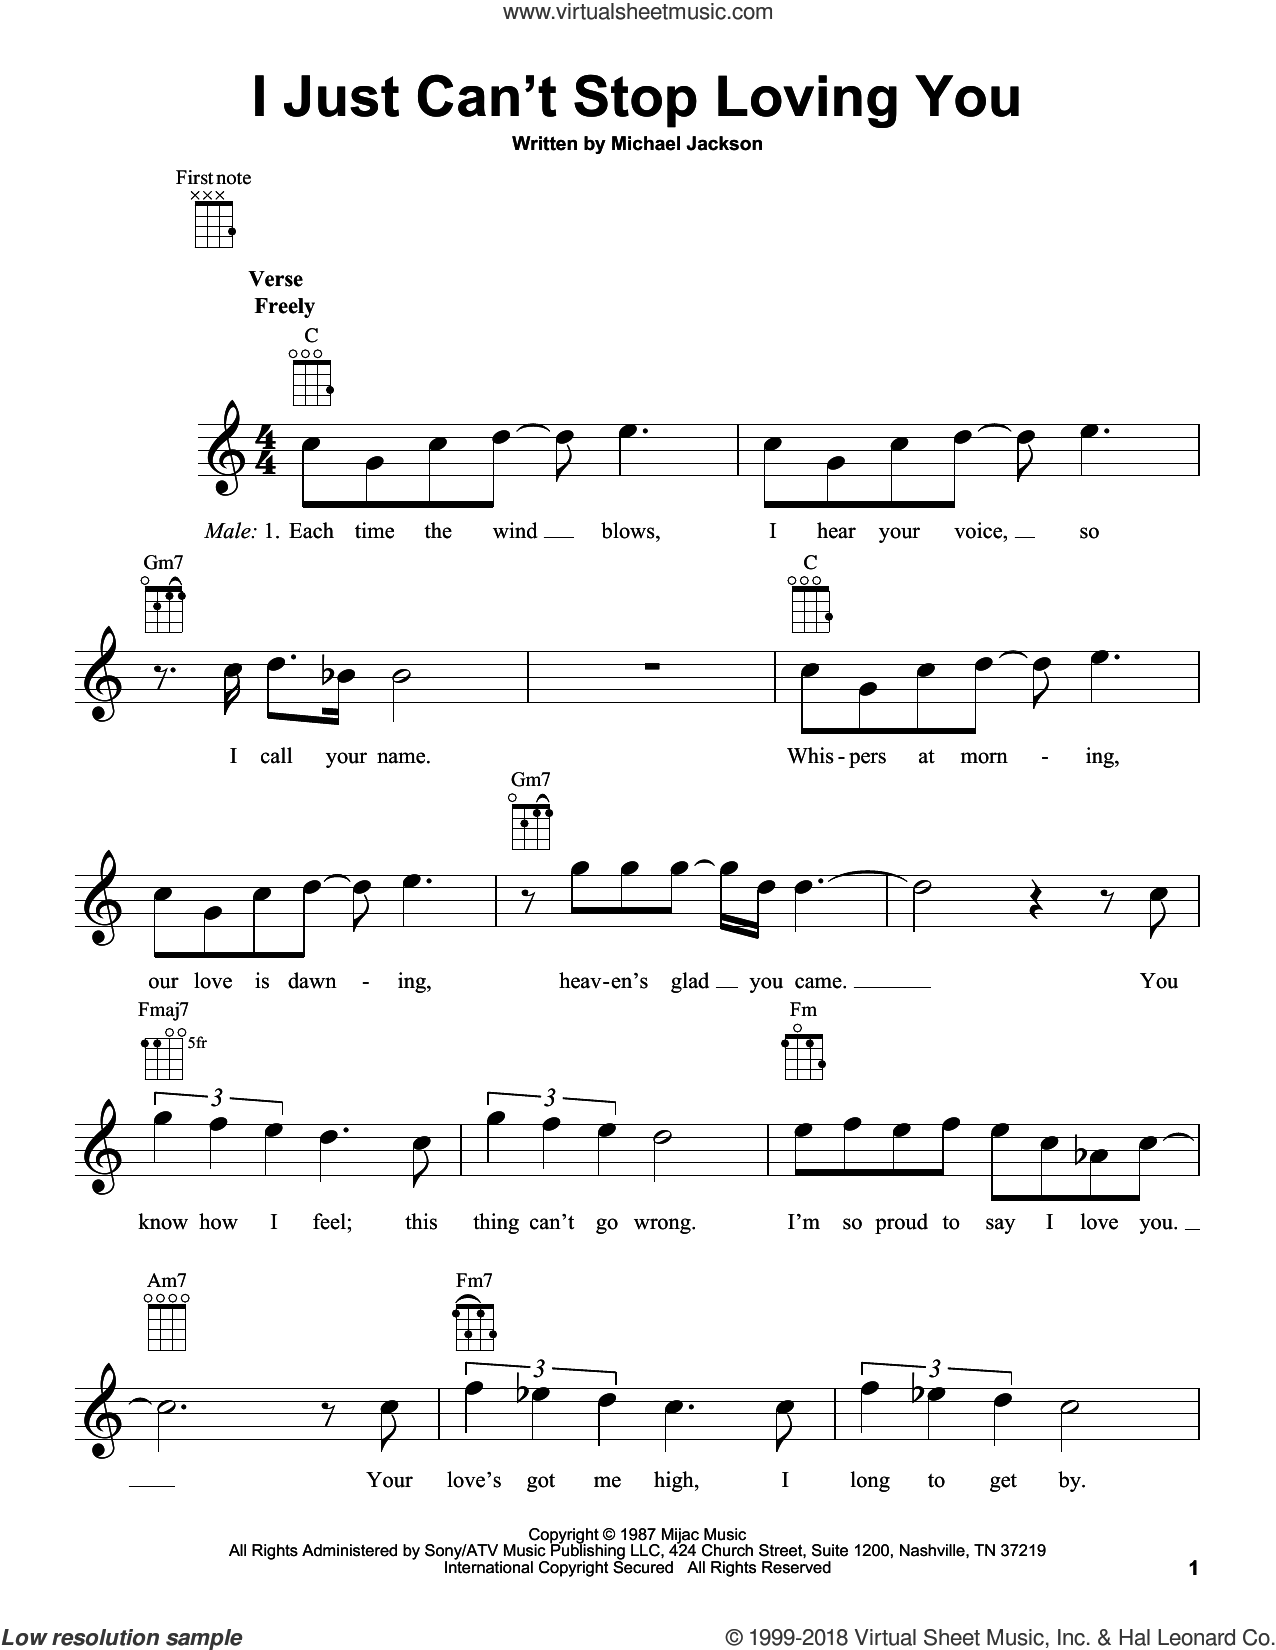 I Just Can't Stop Loving You sheet music for ukulele by Michael Jackson, intermediate skill level